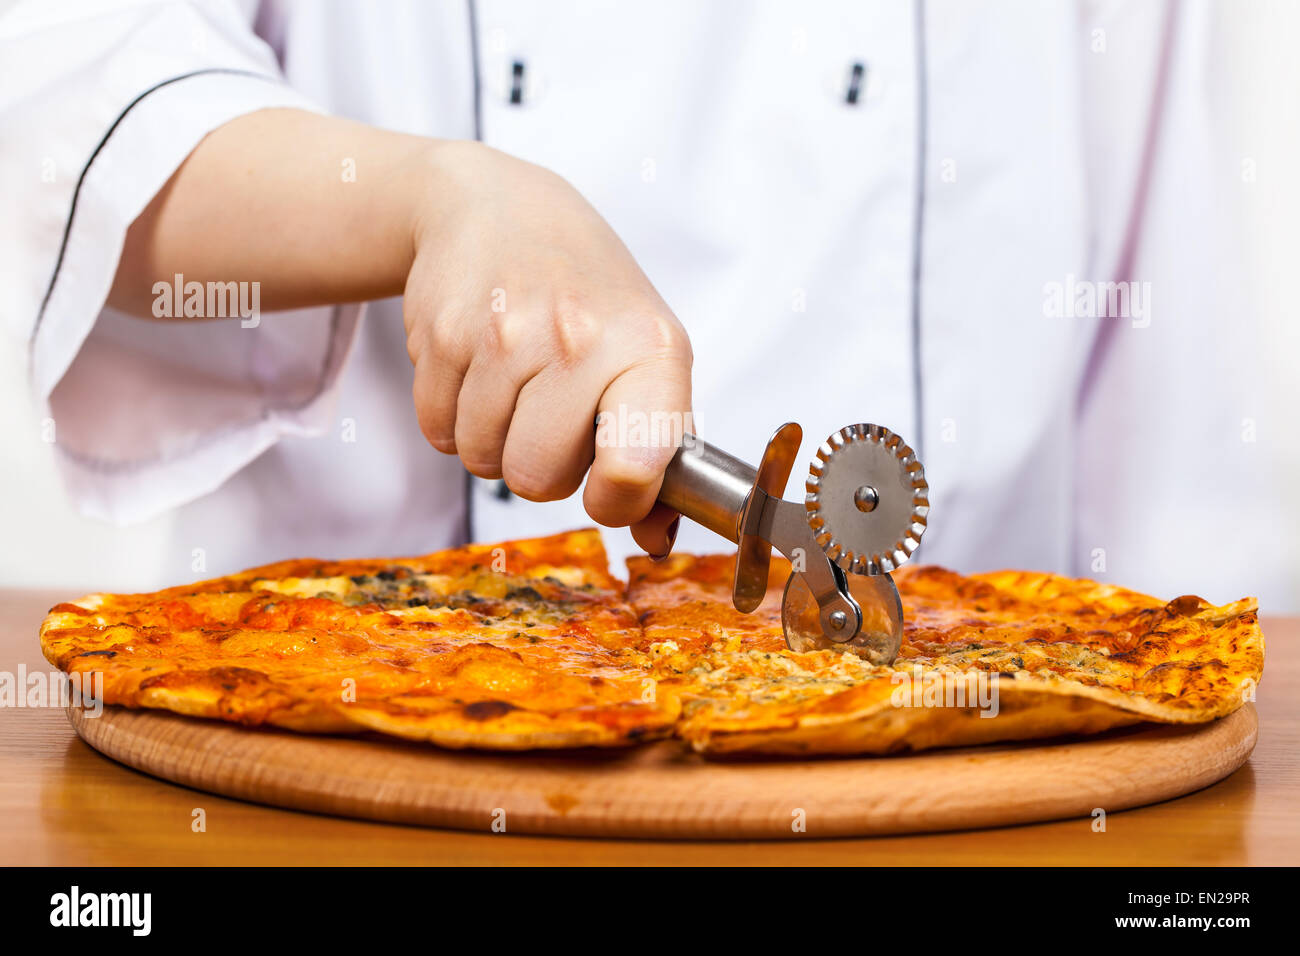 chef with knife cuts the pizza closeup - Stock Image